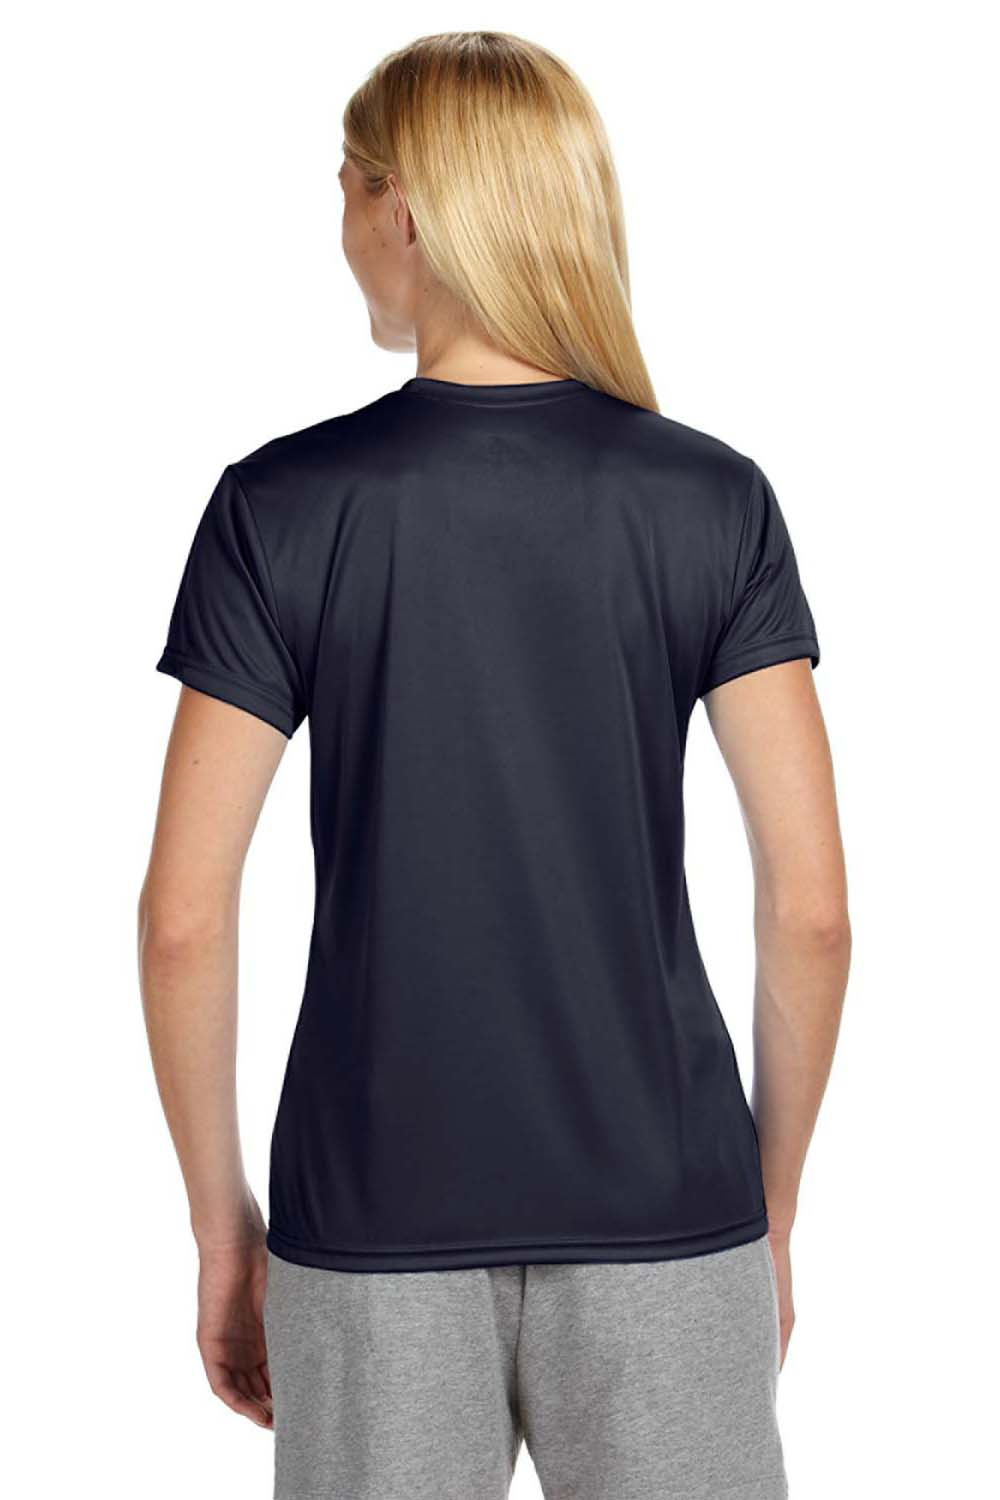 A4 NW3201 Womens Cooling Performance Moisture Wicking Short Sleeve Crewneck T-Shirt Navy Blue Back